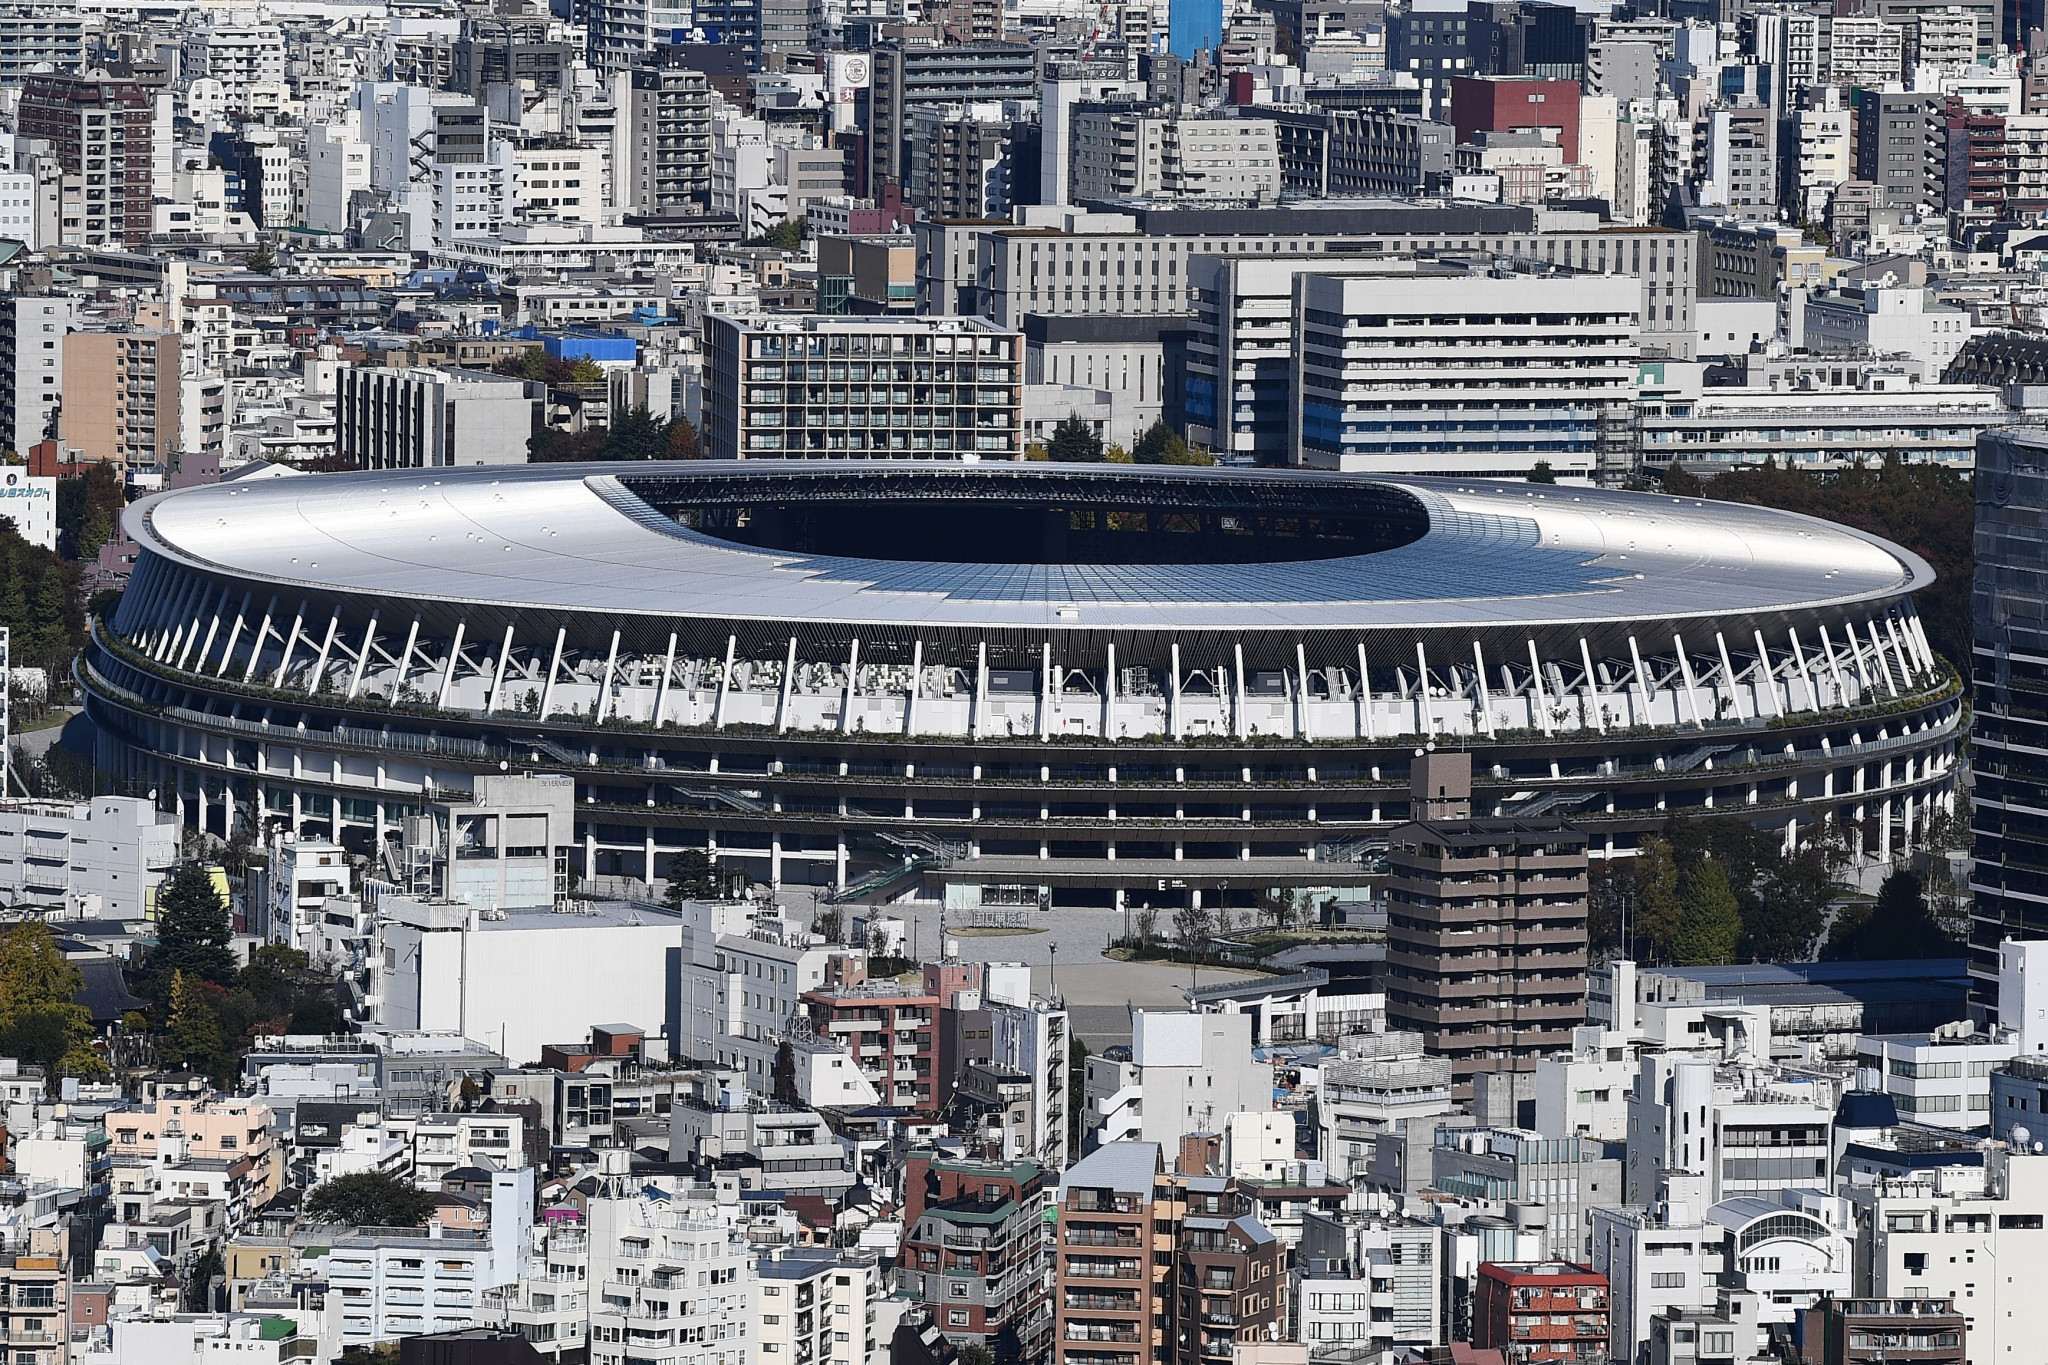 Tokyo 2020 National Stadium handed over to Japan Sport Council after completion